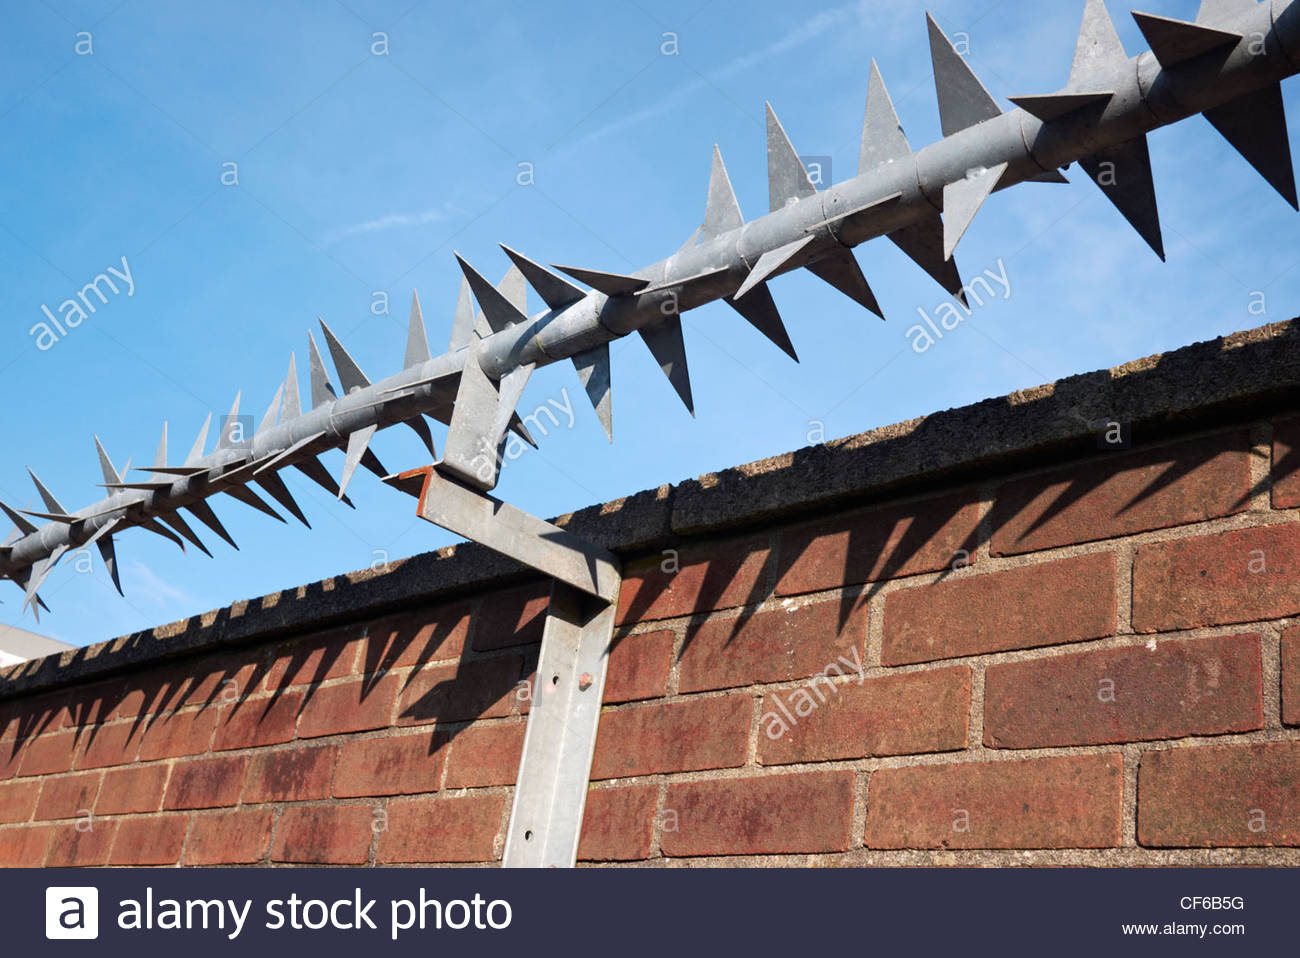 heavy duty metal heavily spiked points security fence barrier on top of a brick wall - Stock Image